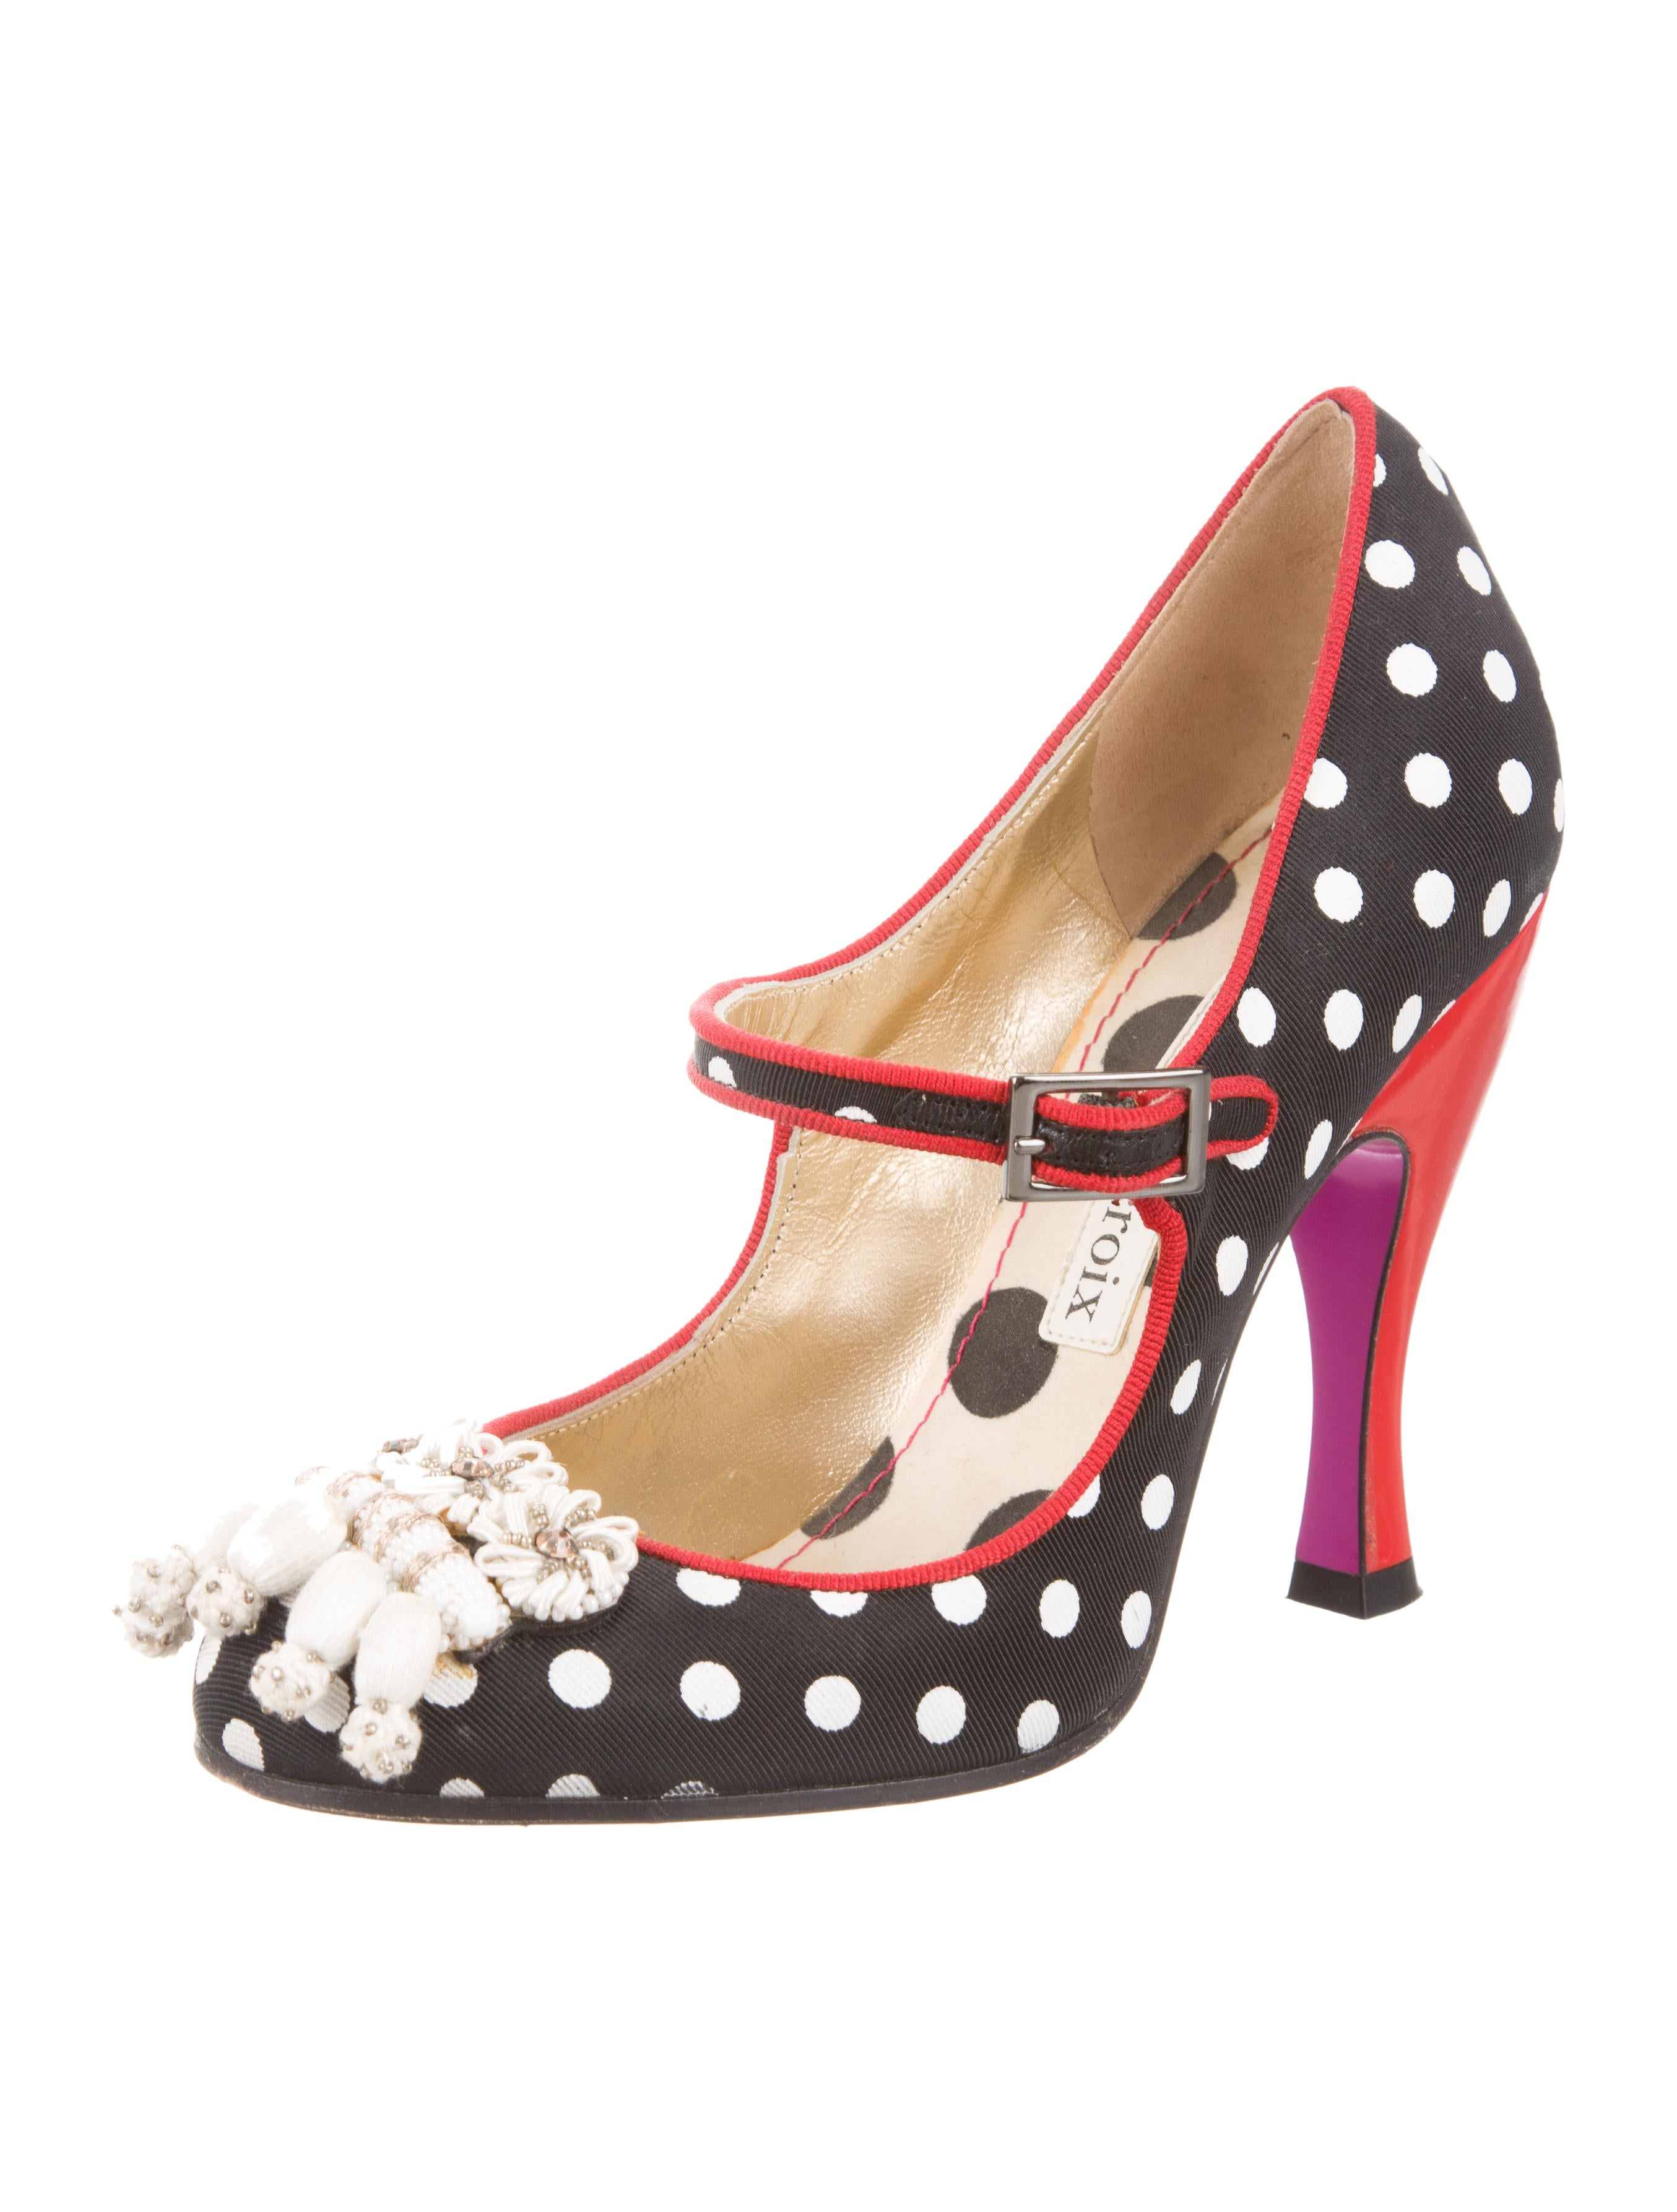 Christian Lacroix Shoes | The RealReal